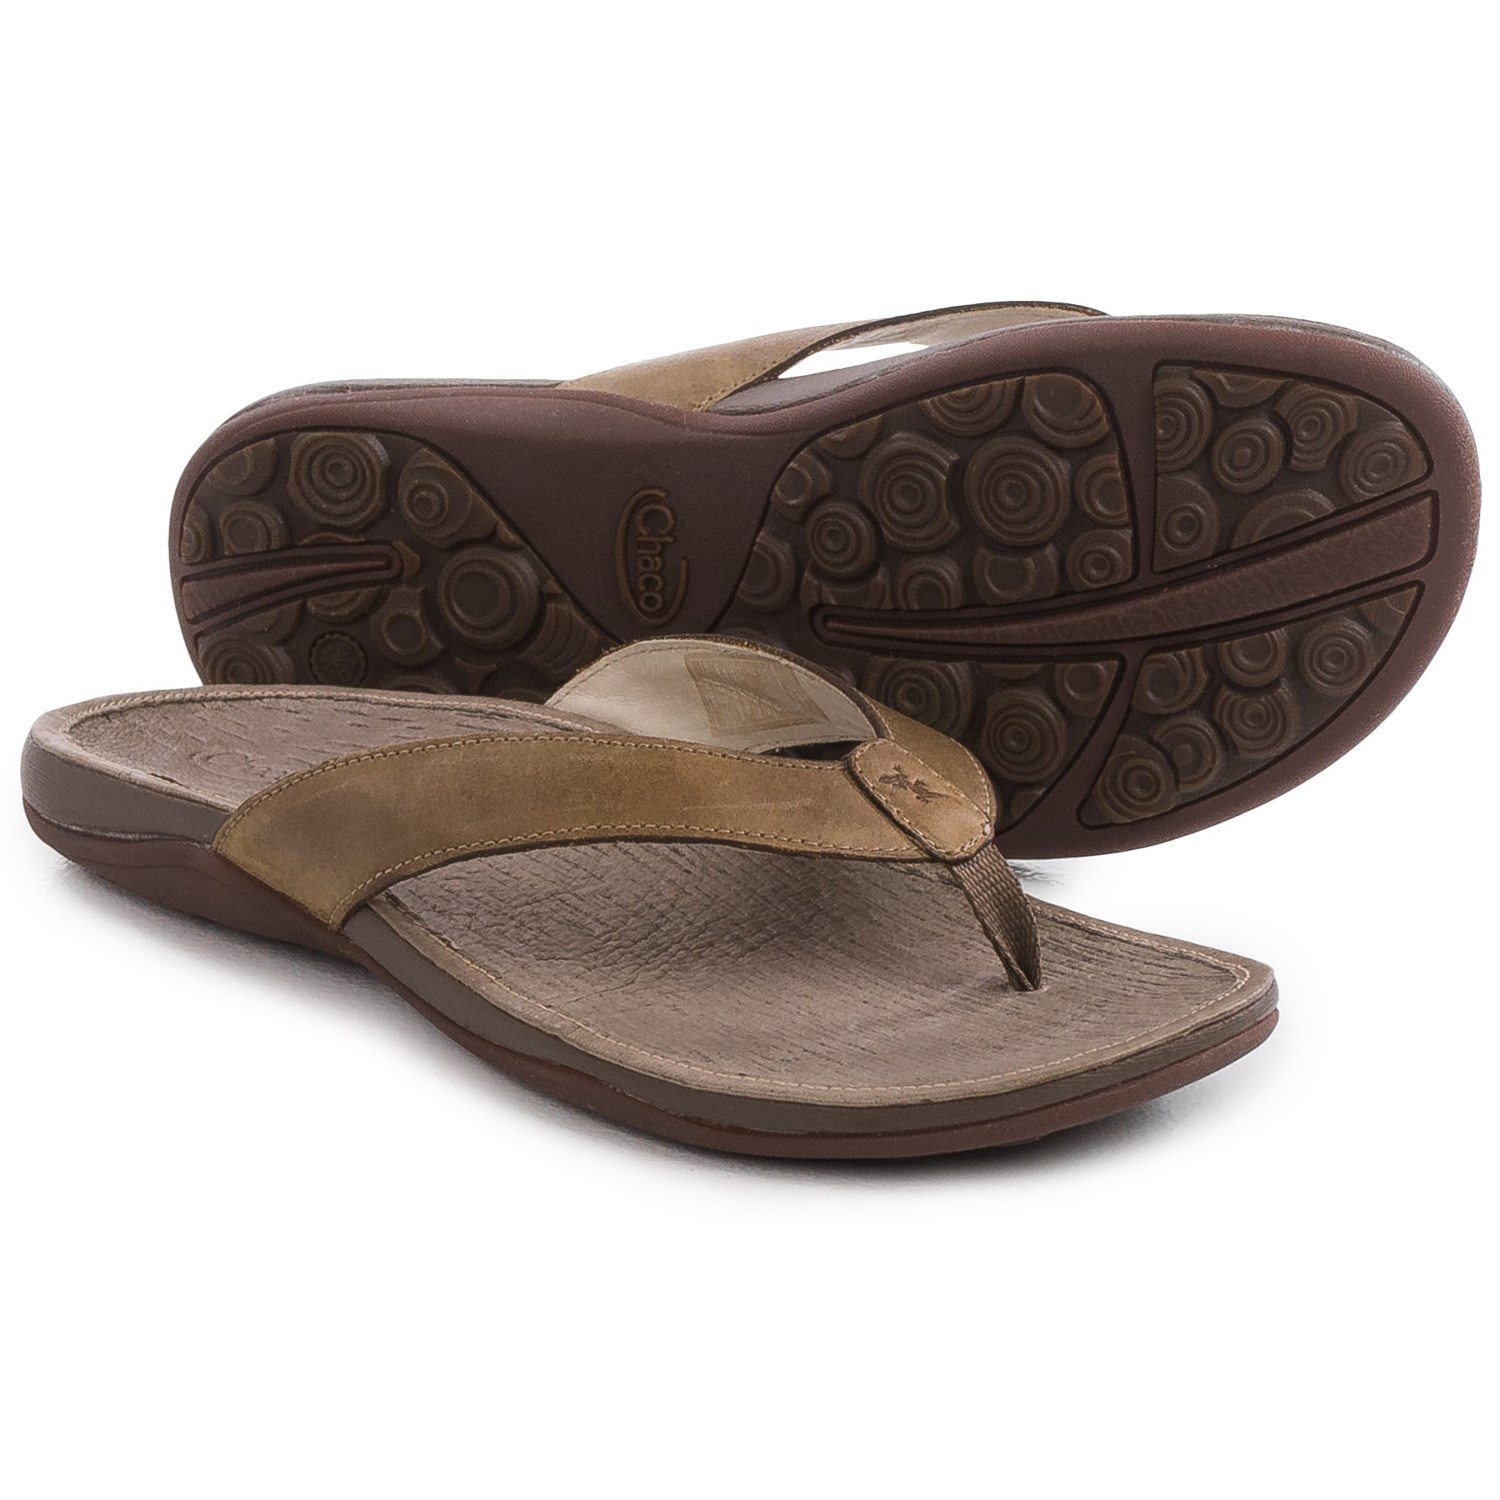 Womens sandals chaco - Chaco Sol Flip Flops Leather For Women In Caribou